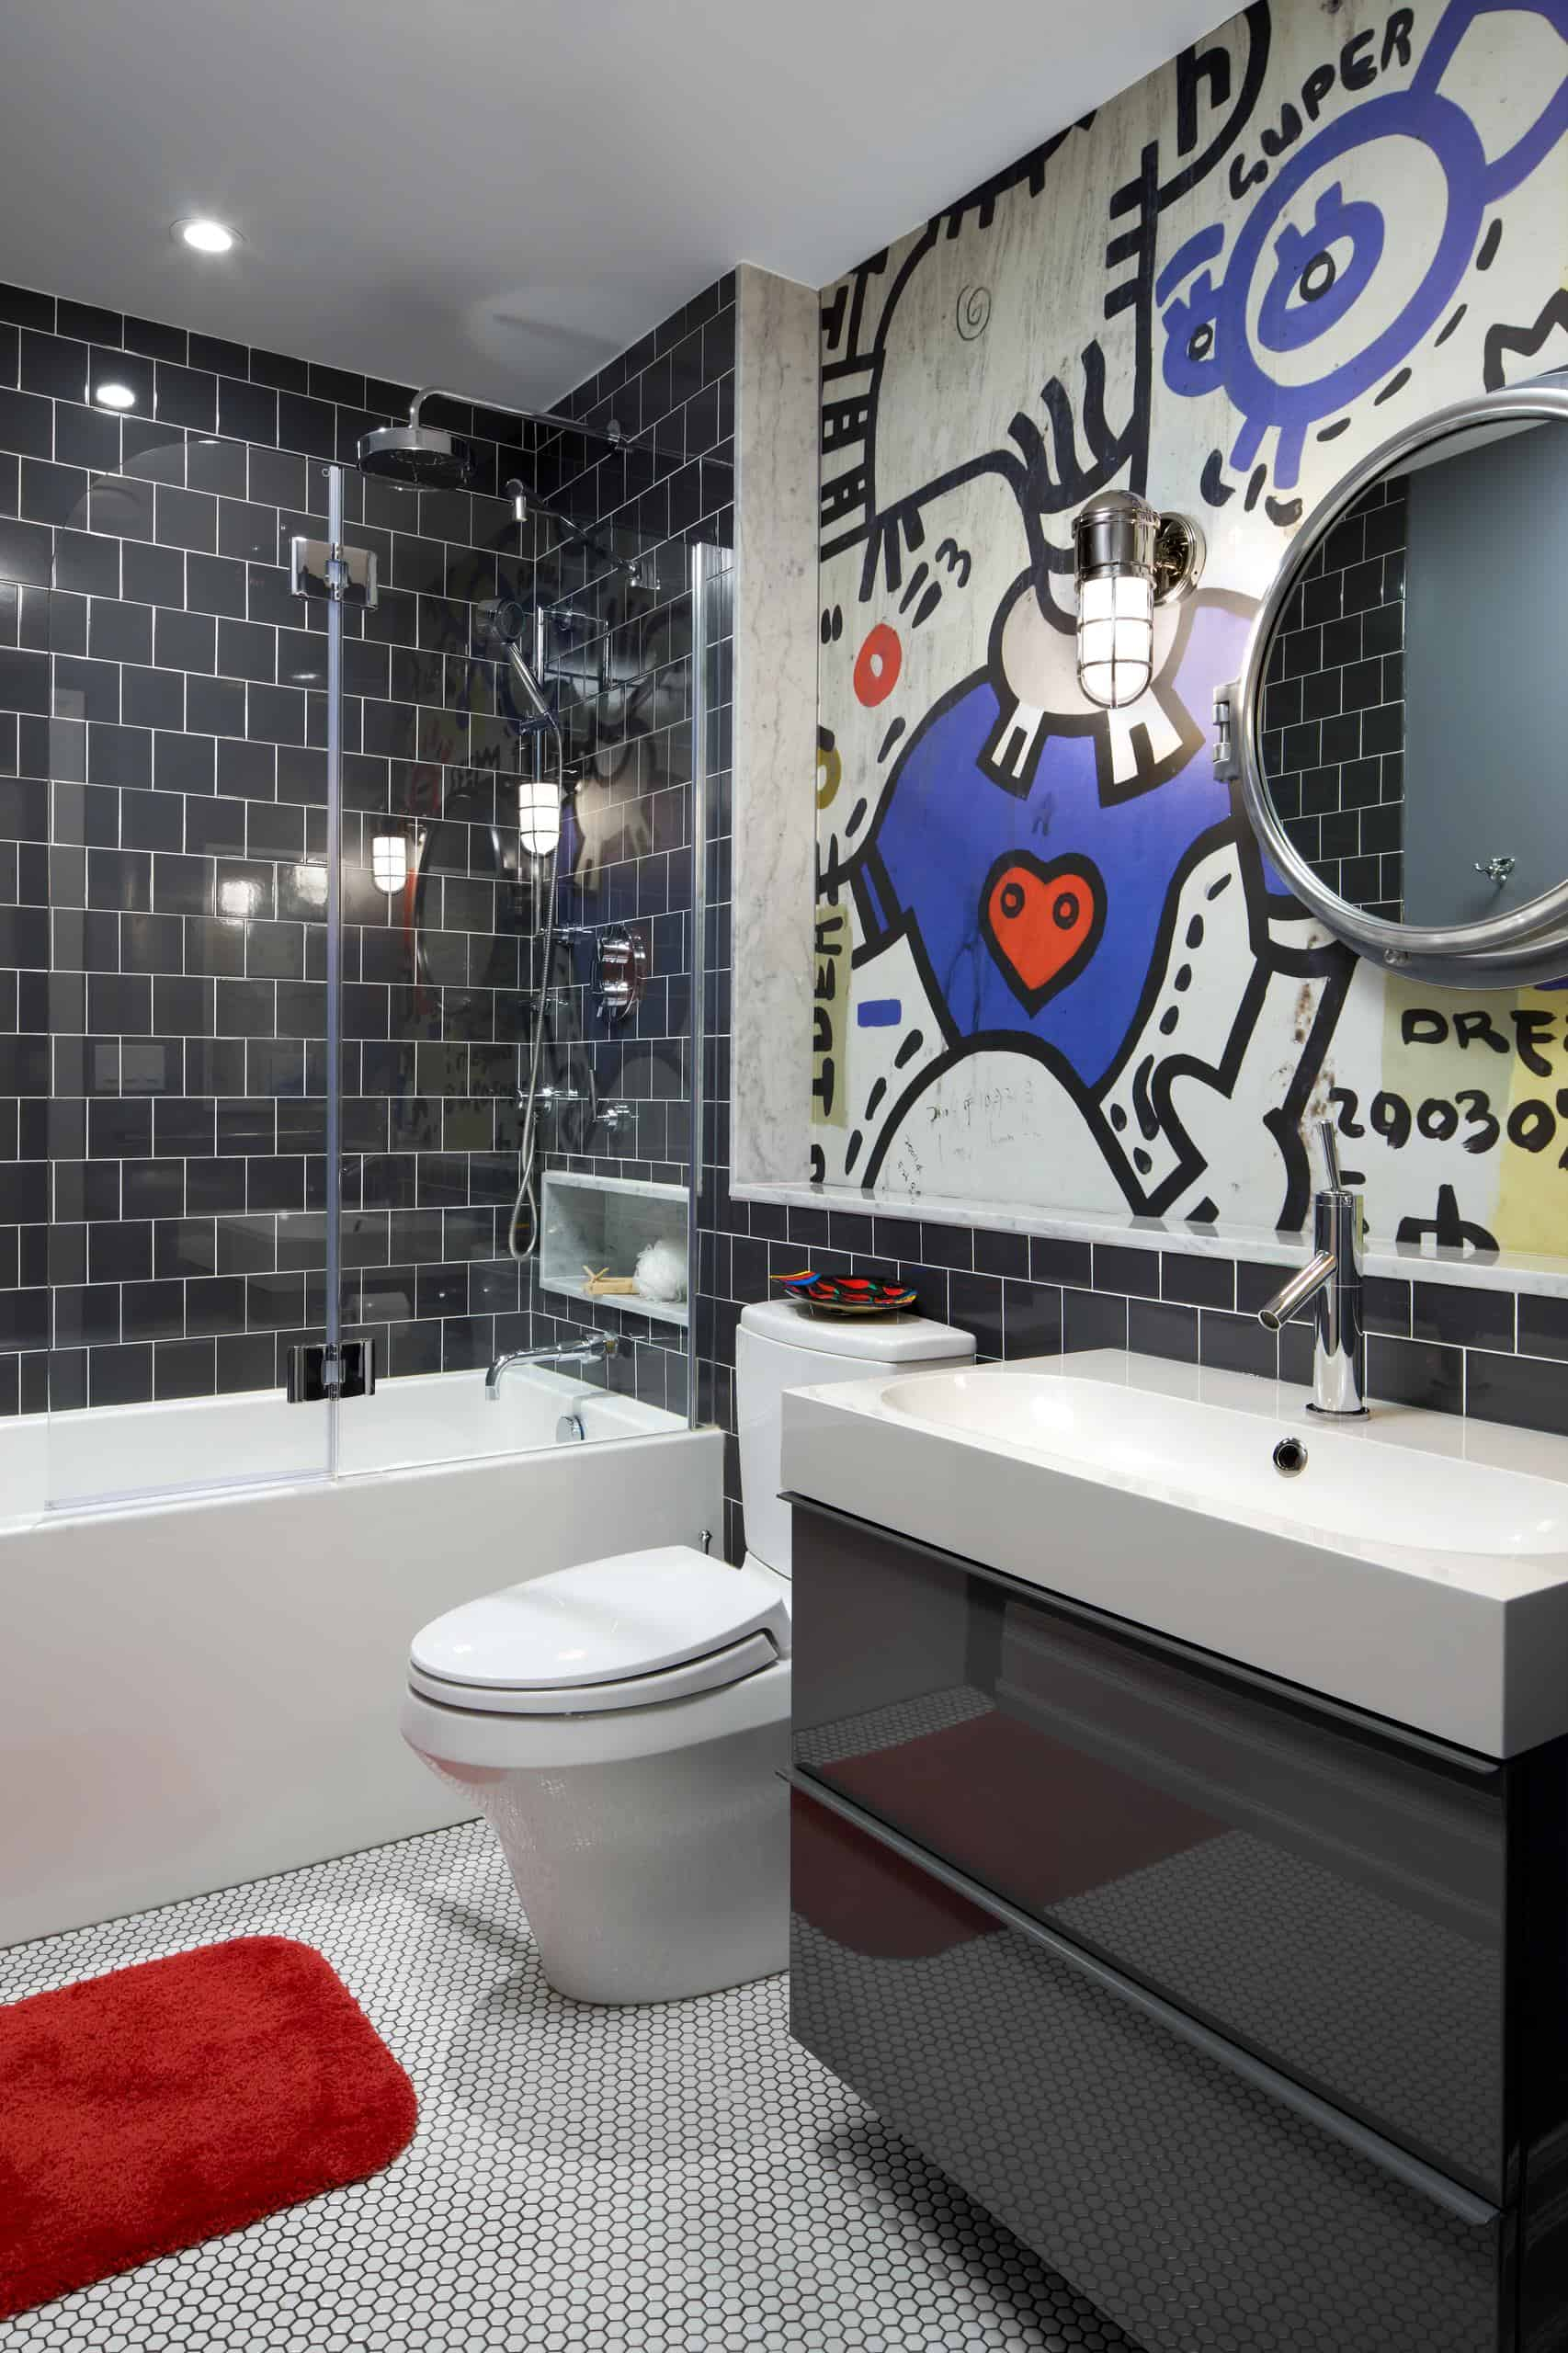 The bathroom or powder room are the perfect areas to add a street art touch because of how small the area can be.